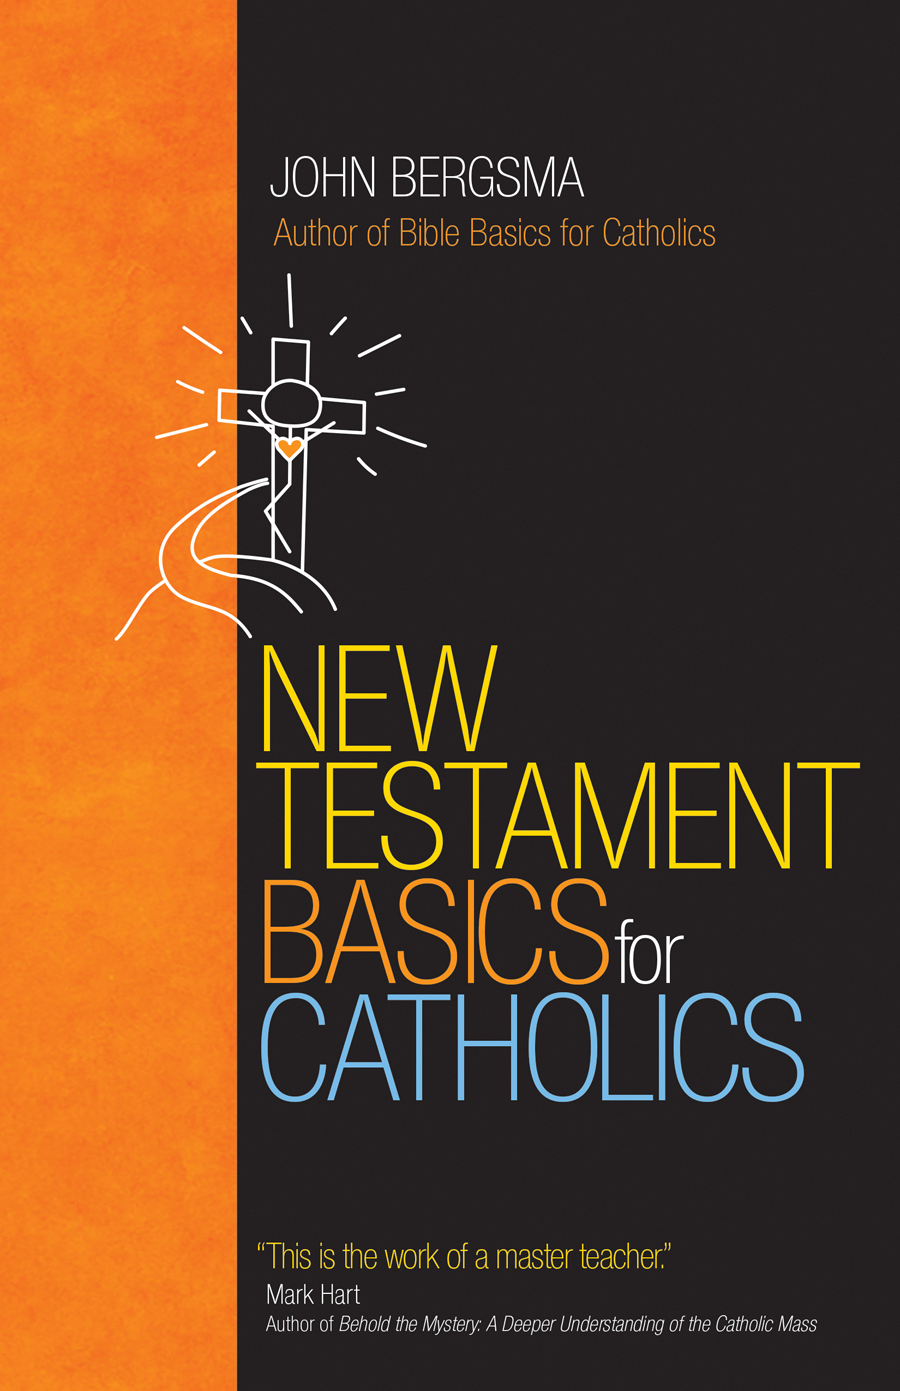 New Testament Basics for Catholics